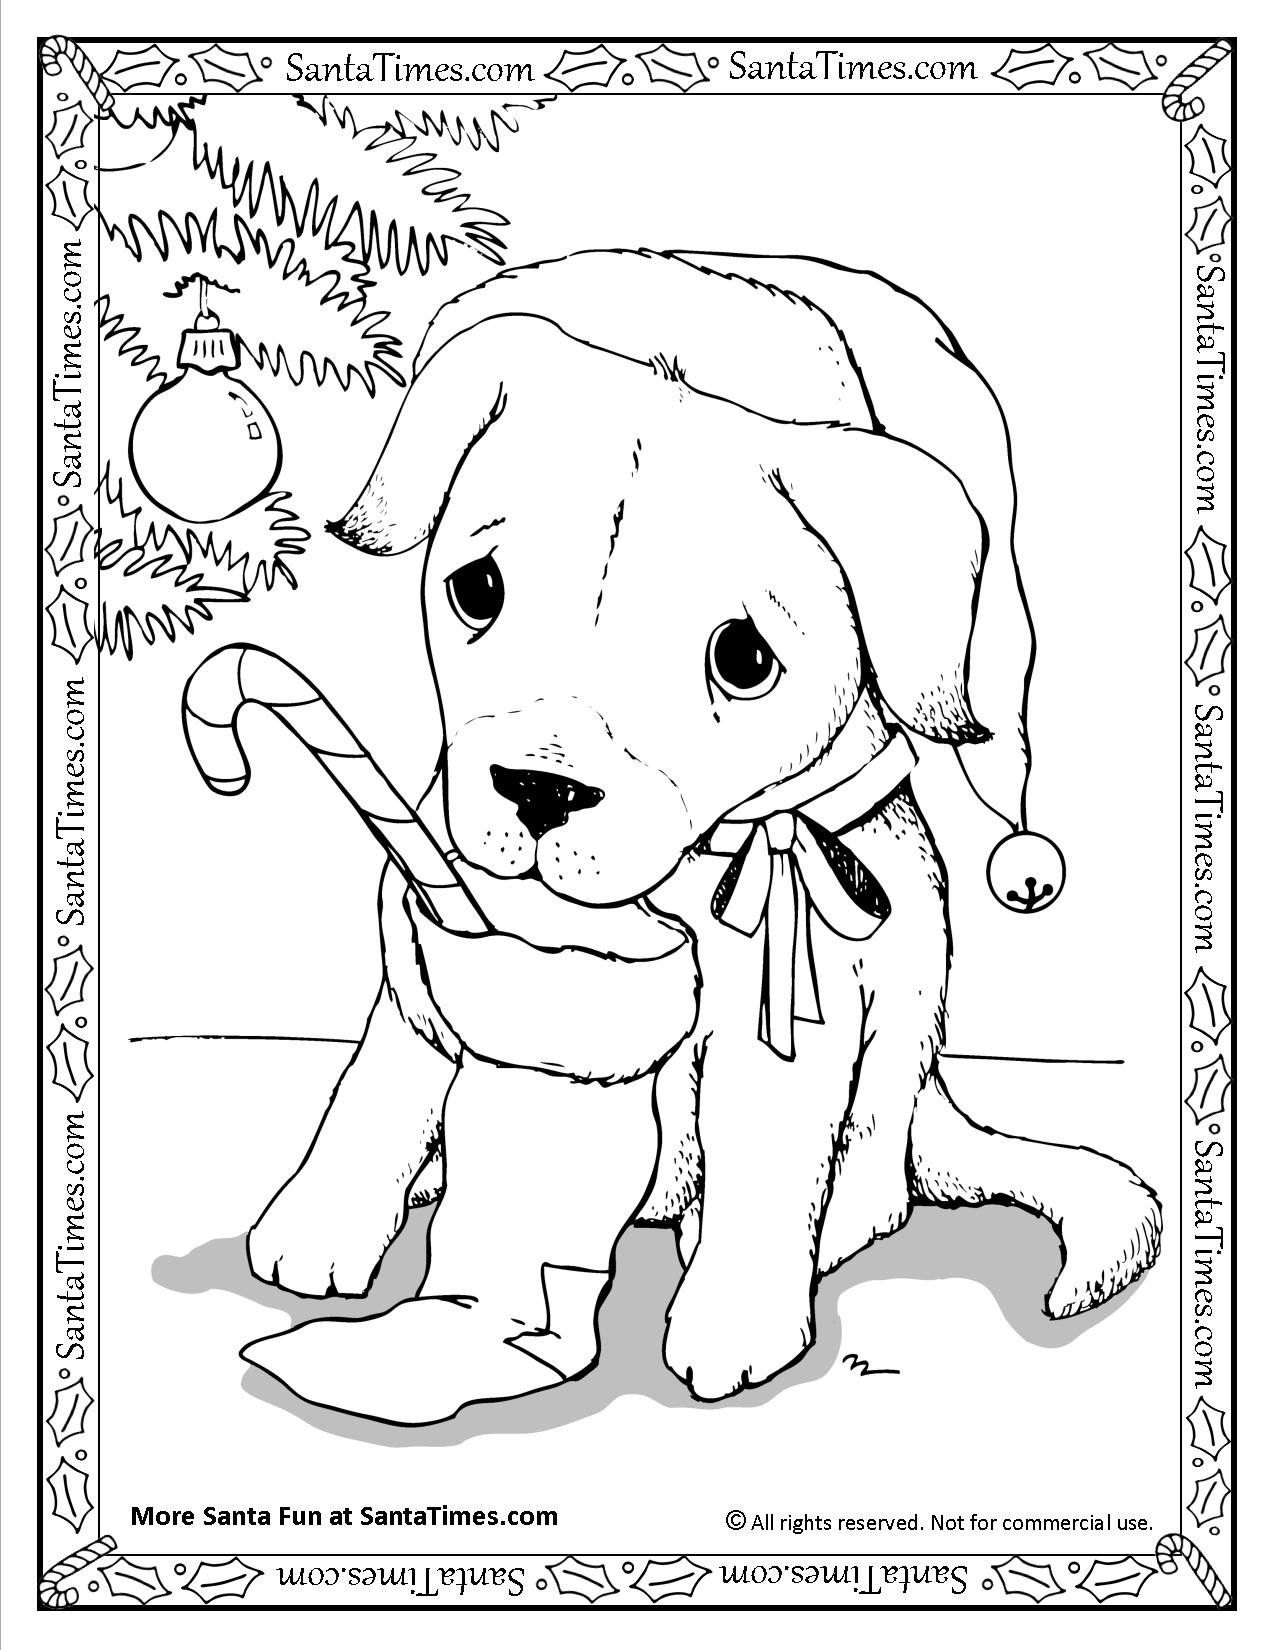 4 Worksheet Realistic Cat Coloring Pages Puppy Christmas Coloring Pages In 2020 Puppy Coloring Pages Christmas Coloring Pages Printable Christmas Coloring Pages